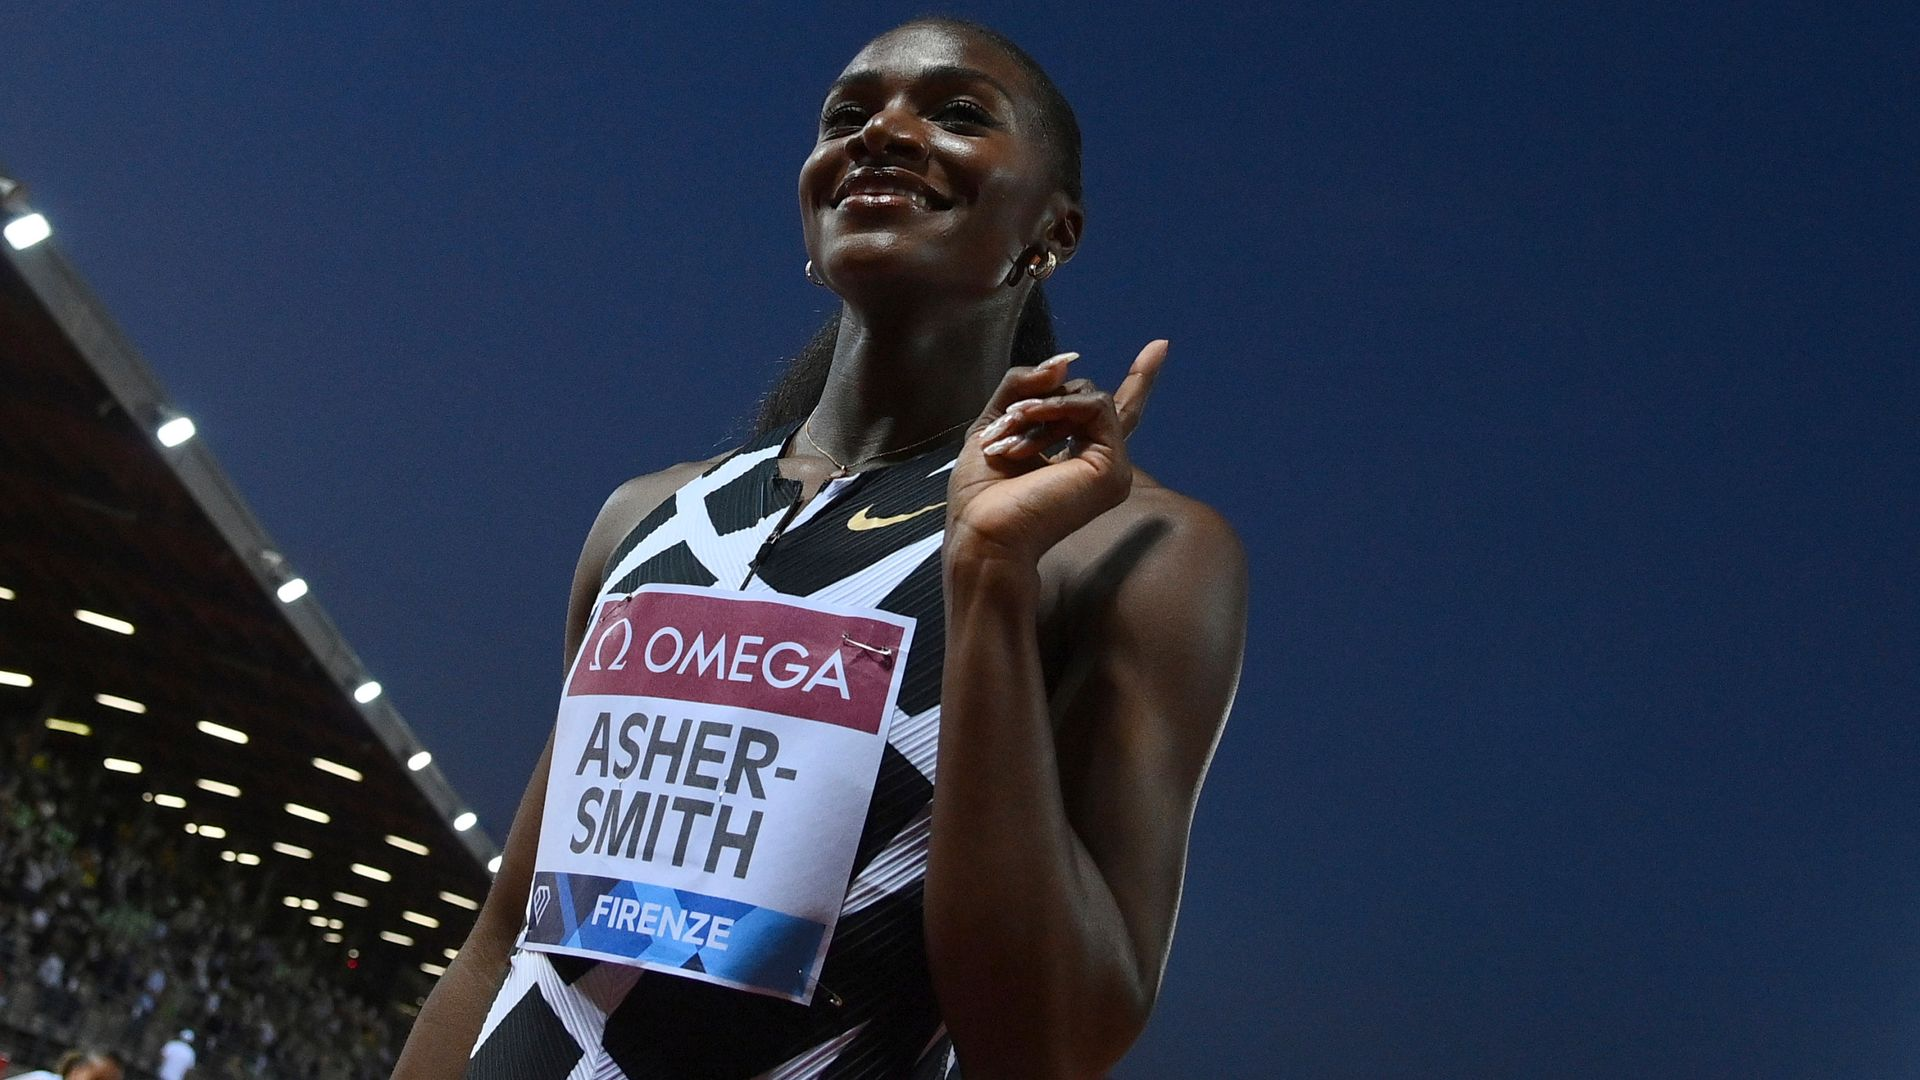 Asher-Smith storms to 200m win in Florence